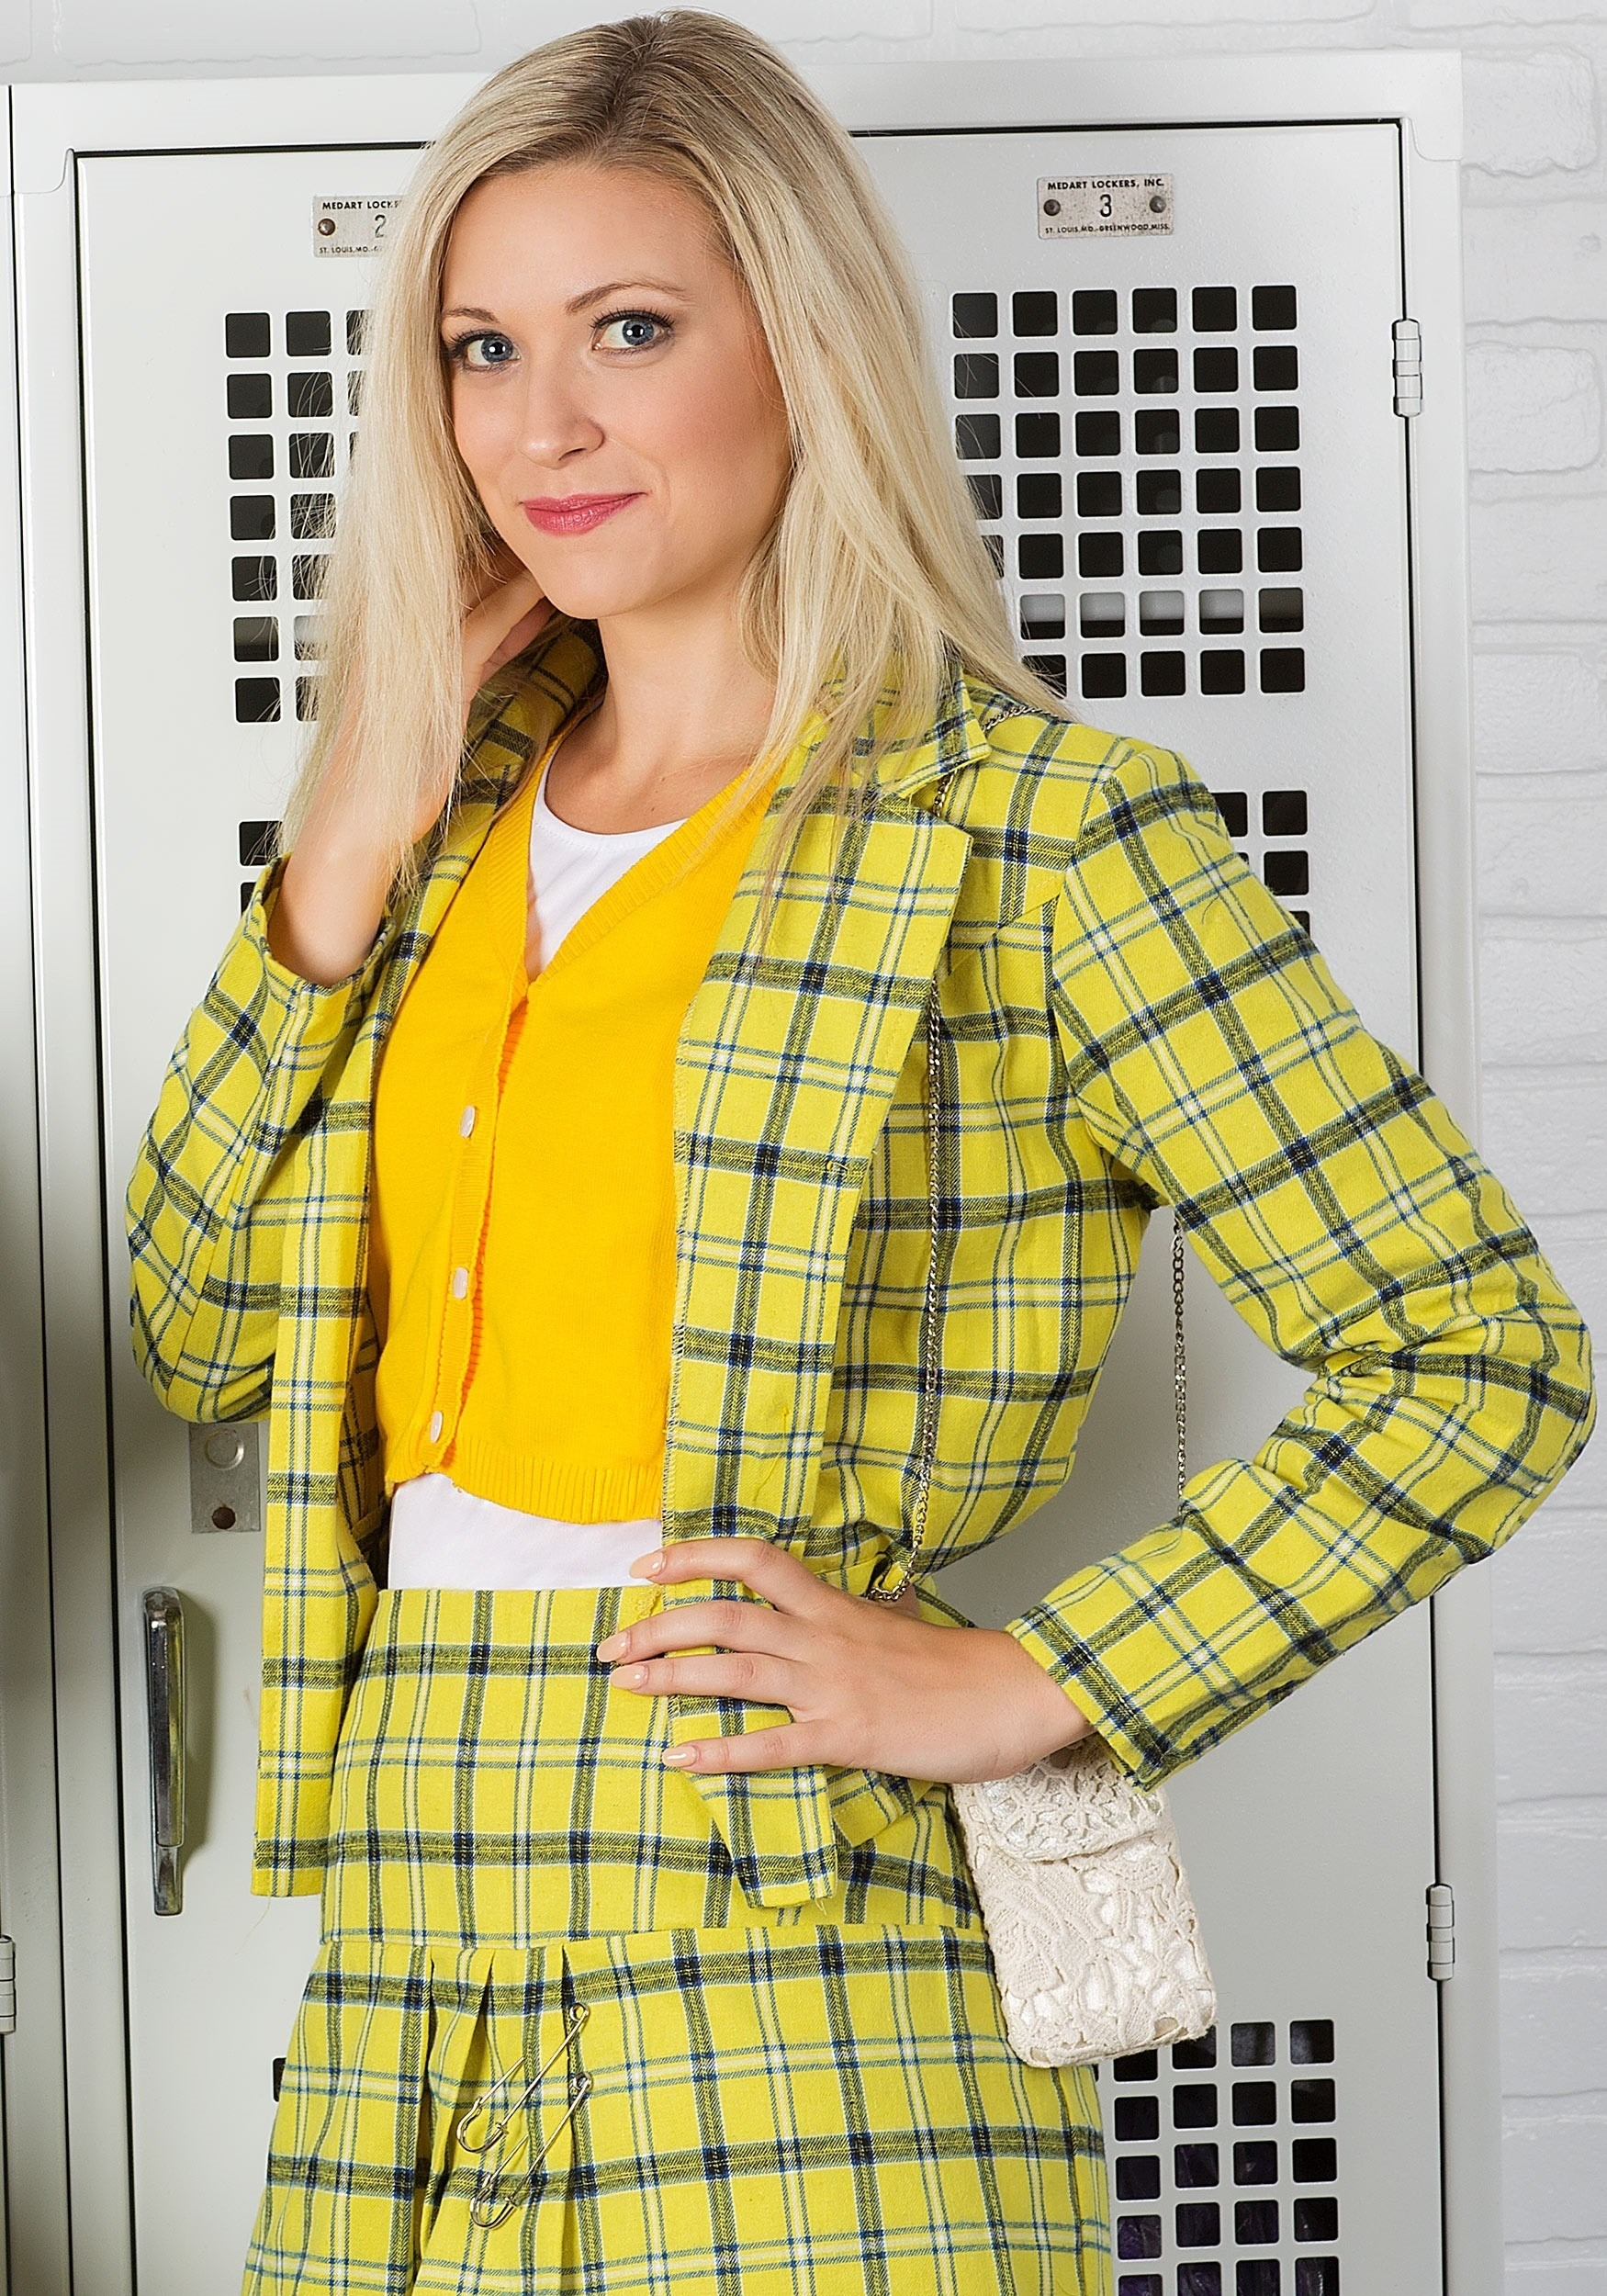 Clueless Cher Plus Size Costume For Women 80s Movie Costume